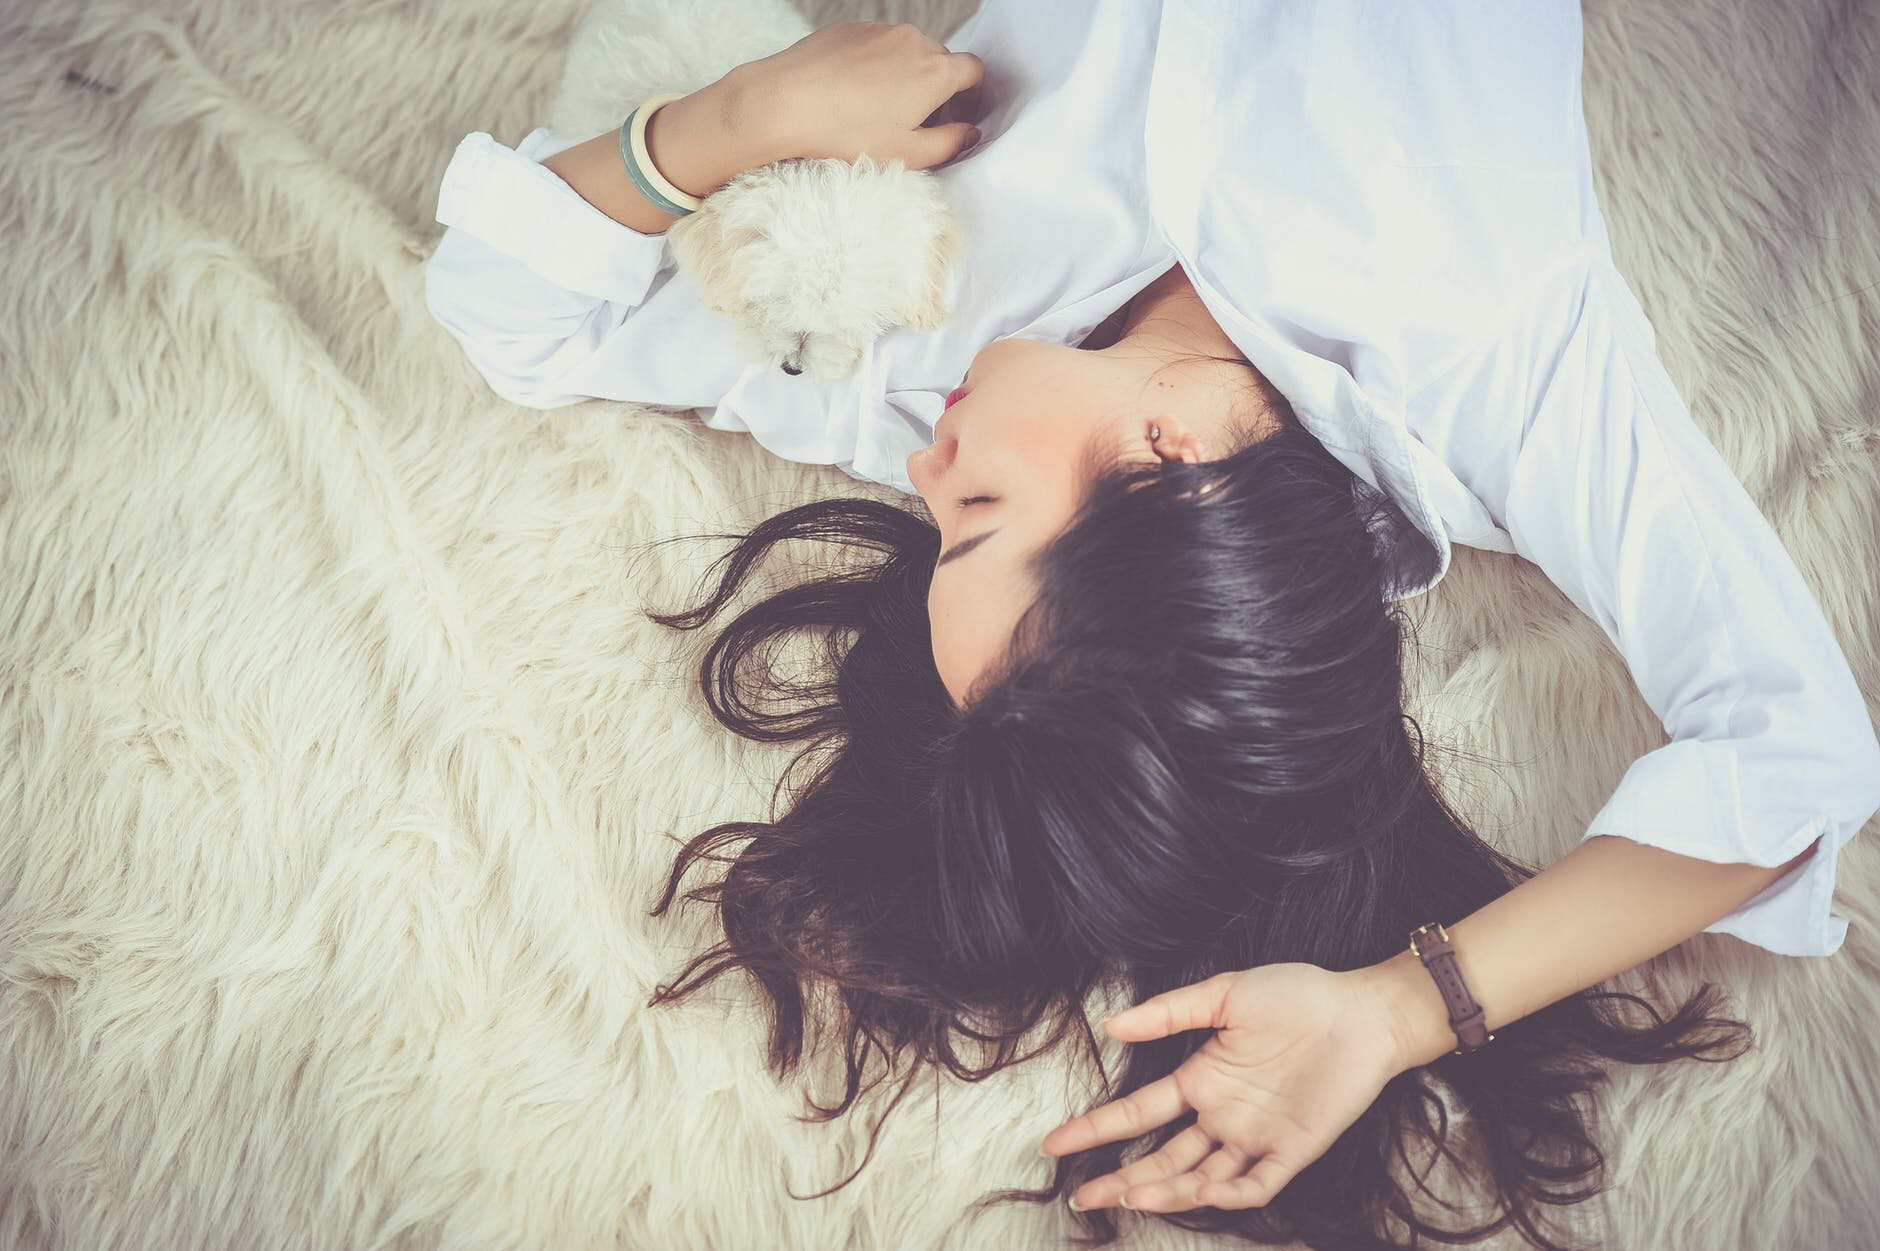 Dark haired woman lies unconscious on a rug